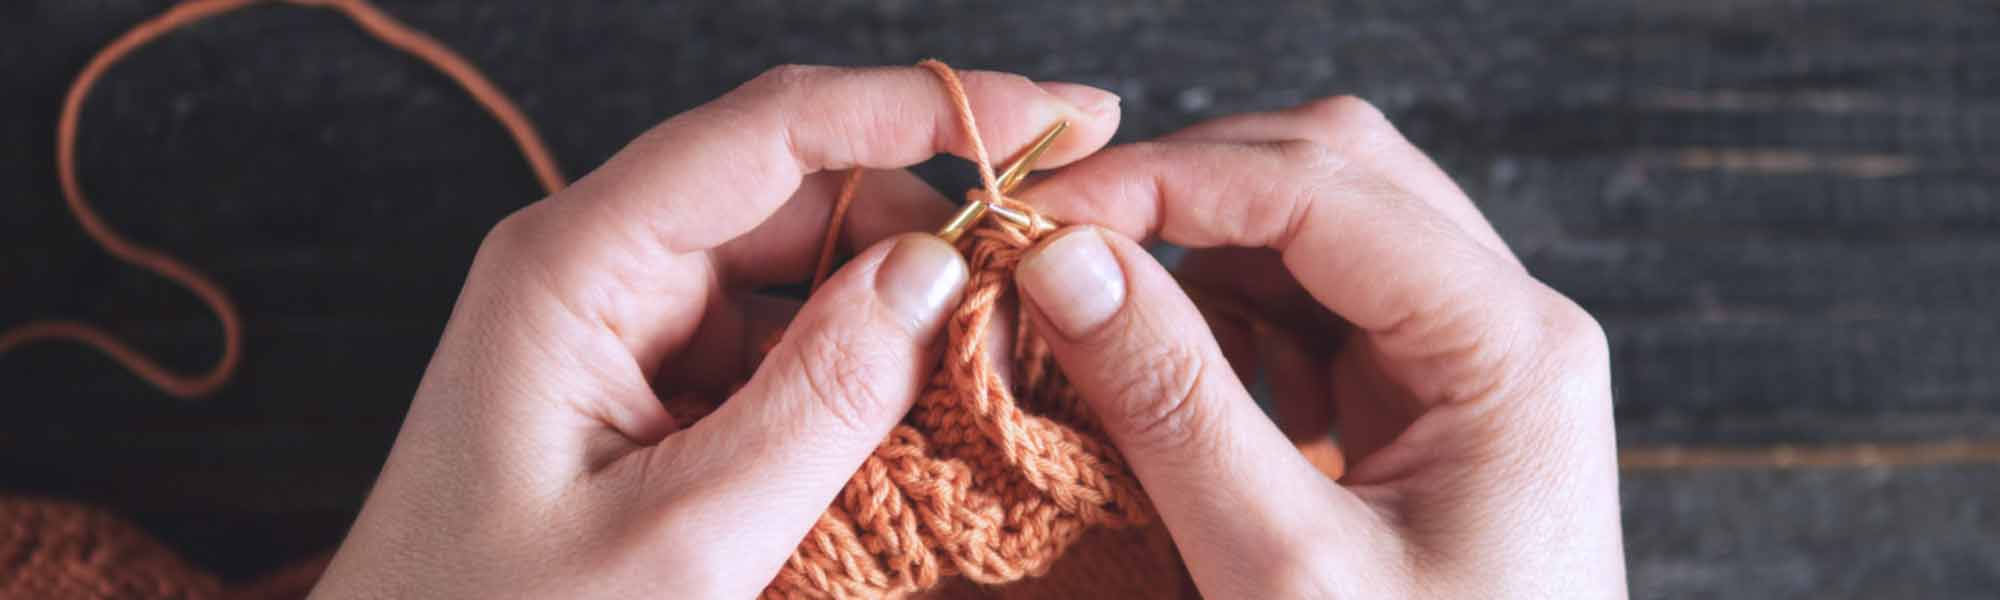 The Best Knitting Needles For Lace The Knitting Needle Guide